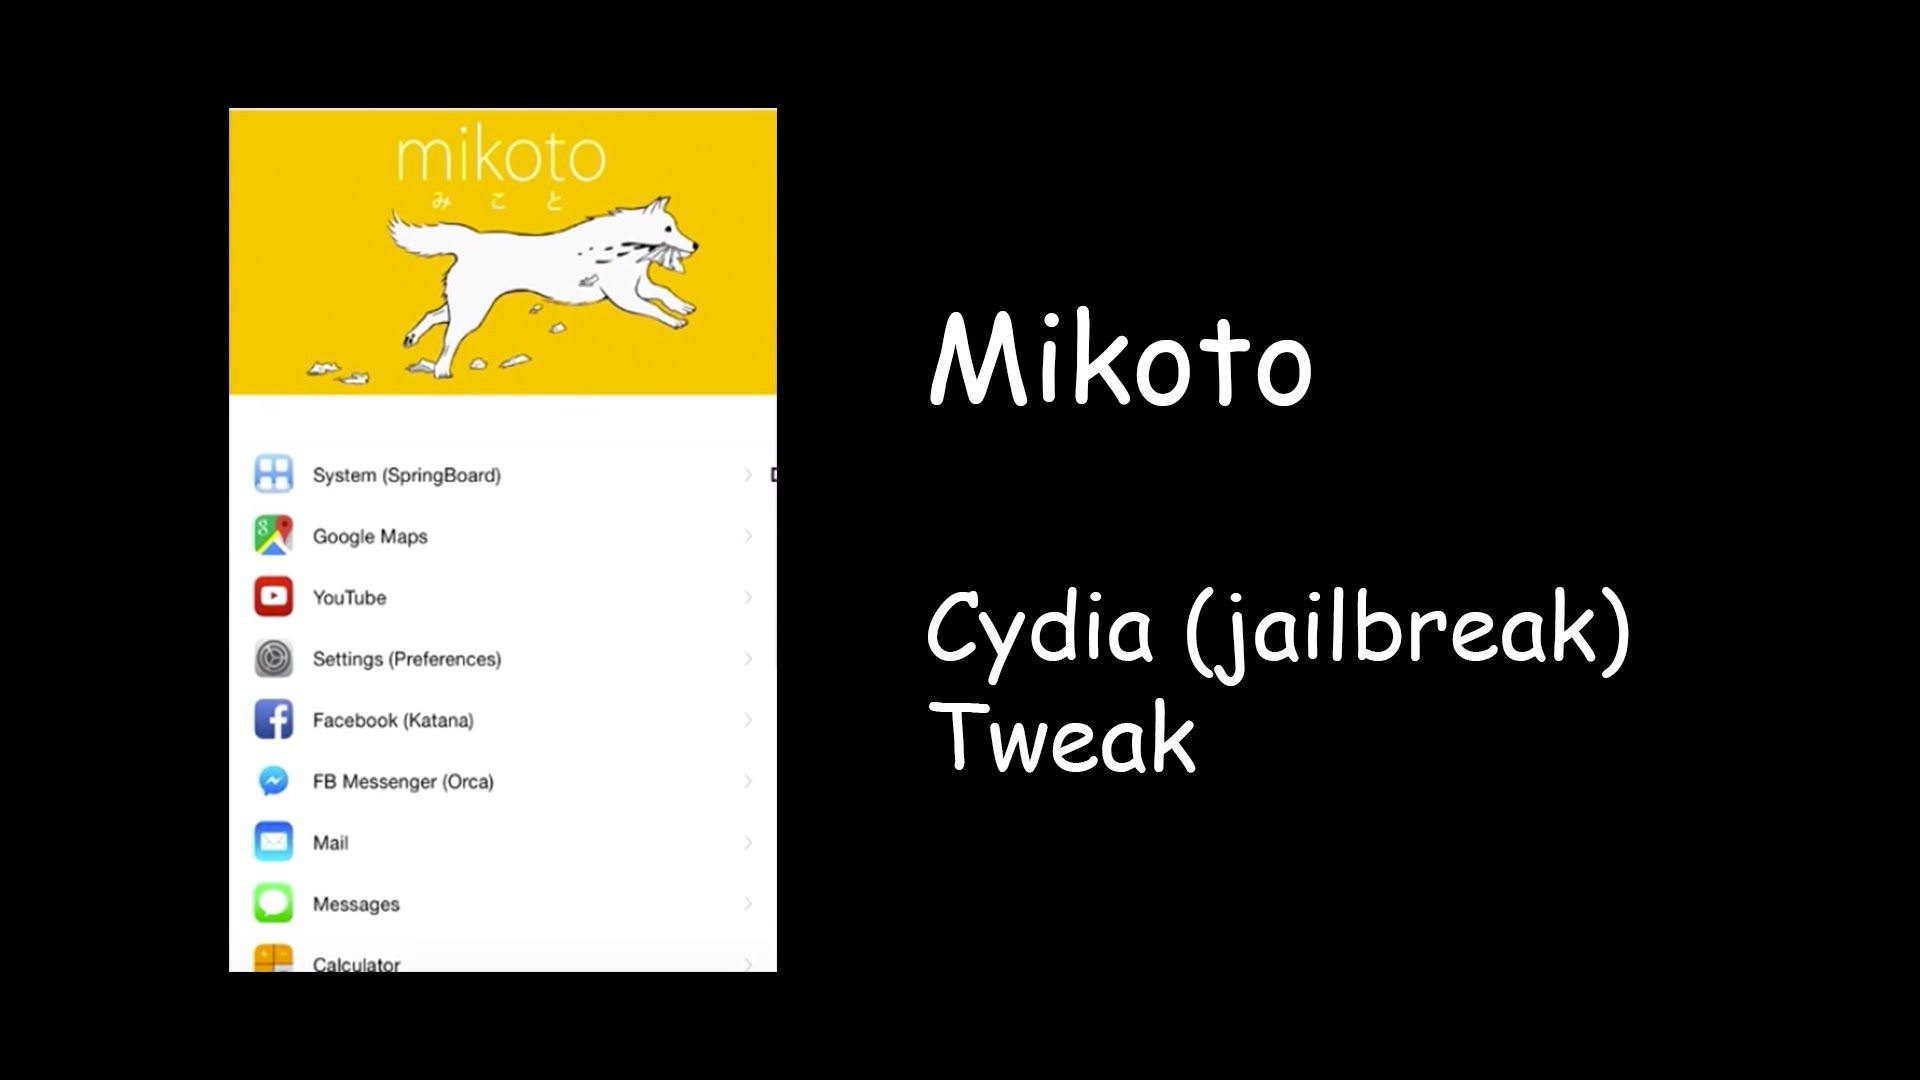 Mikoto Customize App Store apps including iOS itself